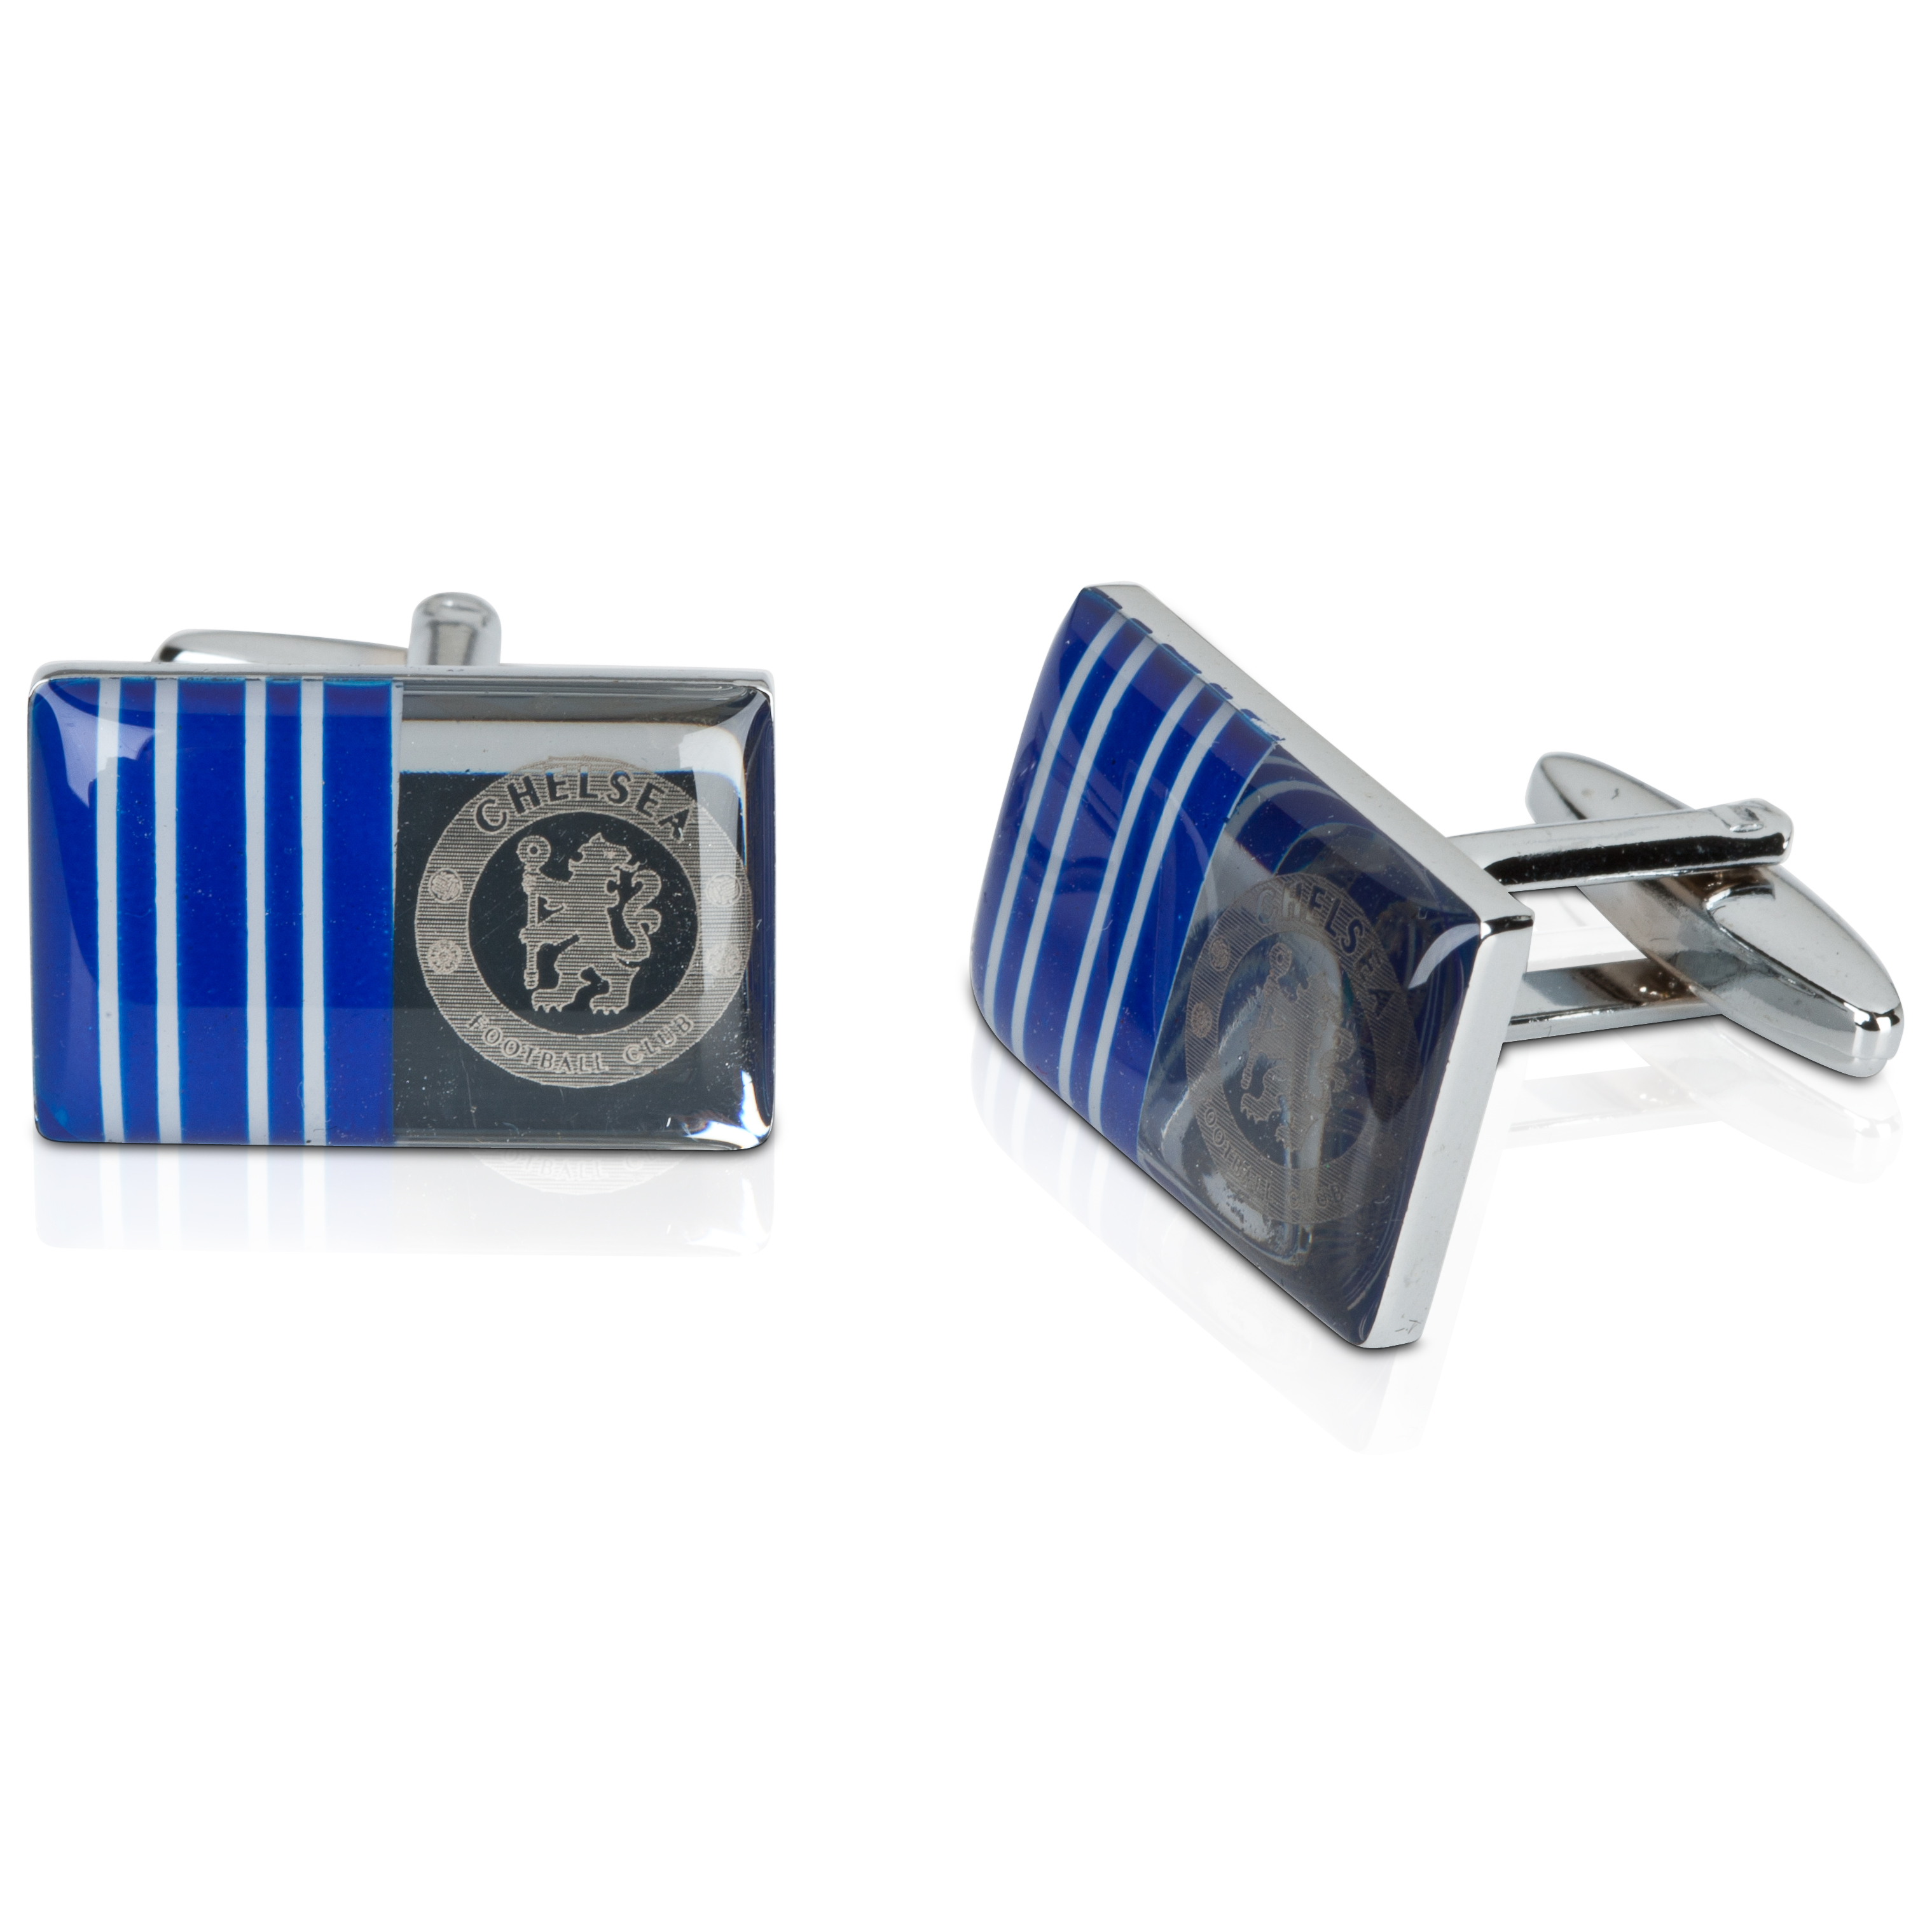 Chelsea Striped Crest Cufflinks